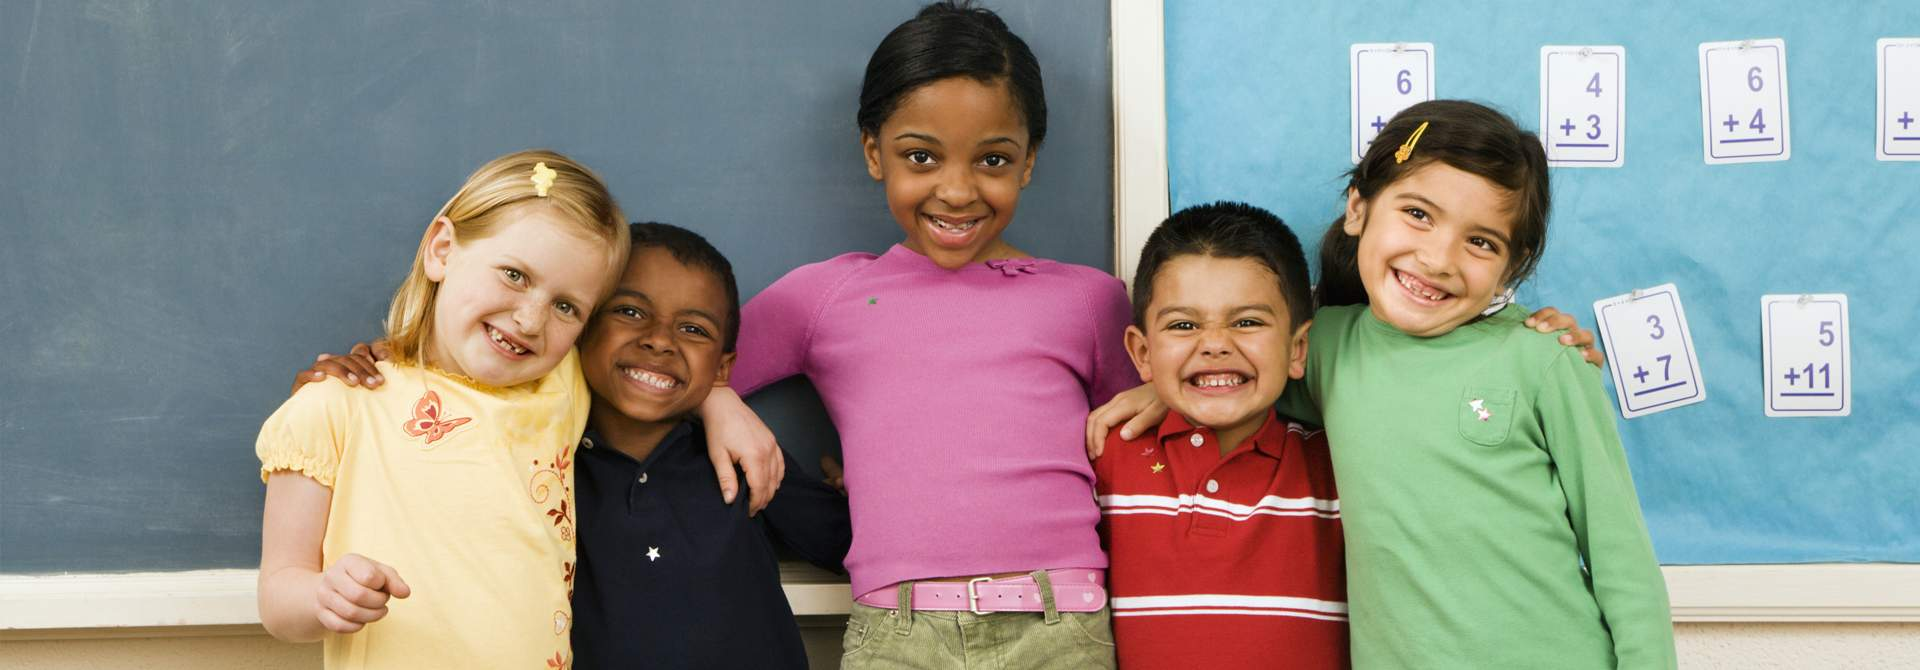 banner image with five smiling children